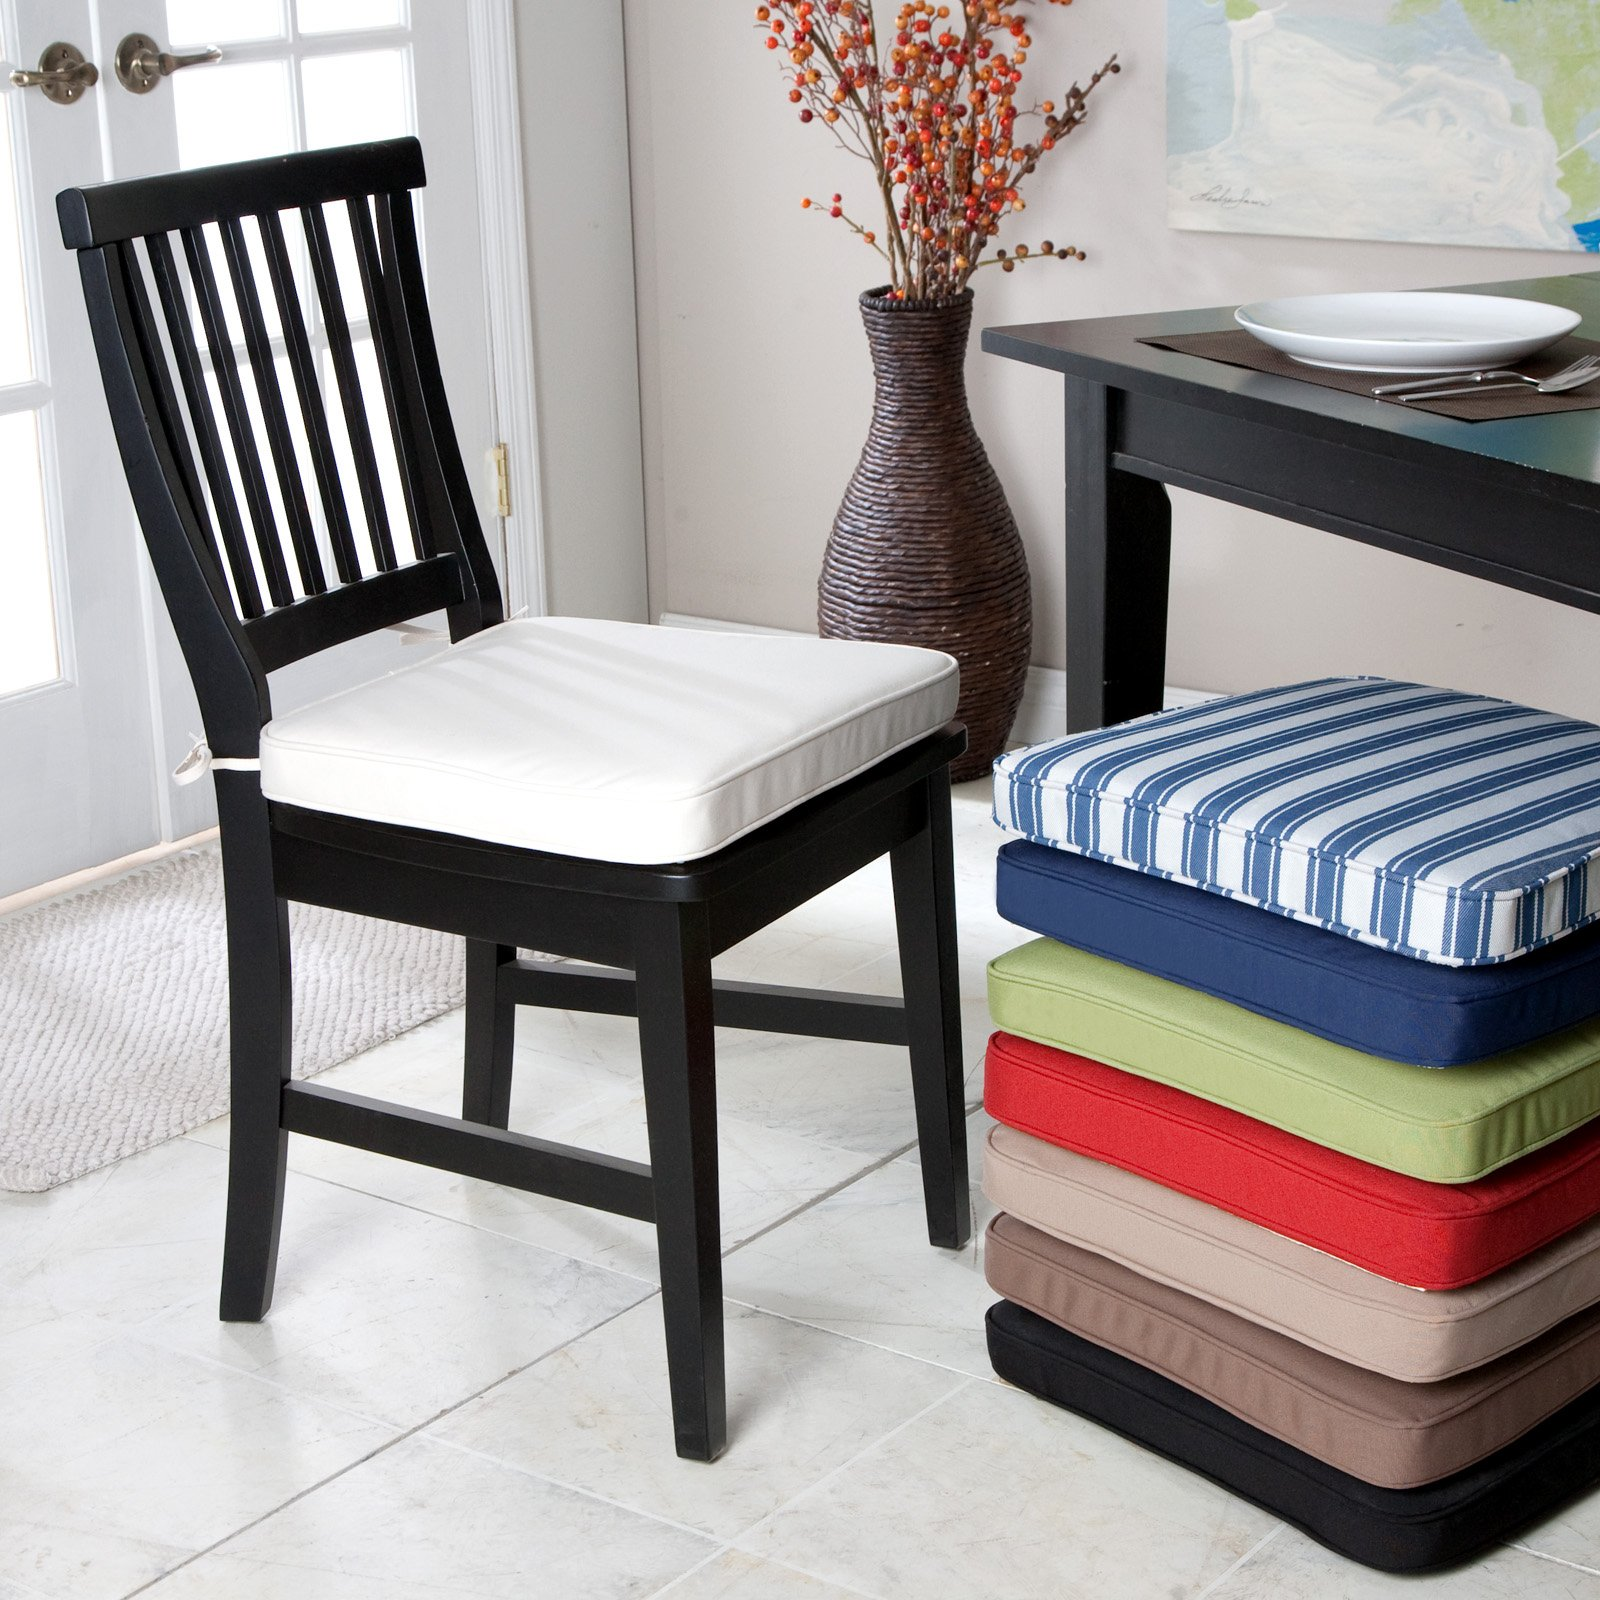 Dining room chairs seat covers - large and beautiful photos. Photo ...